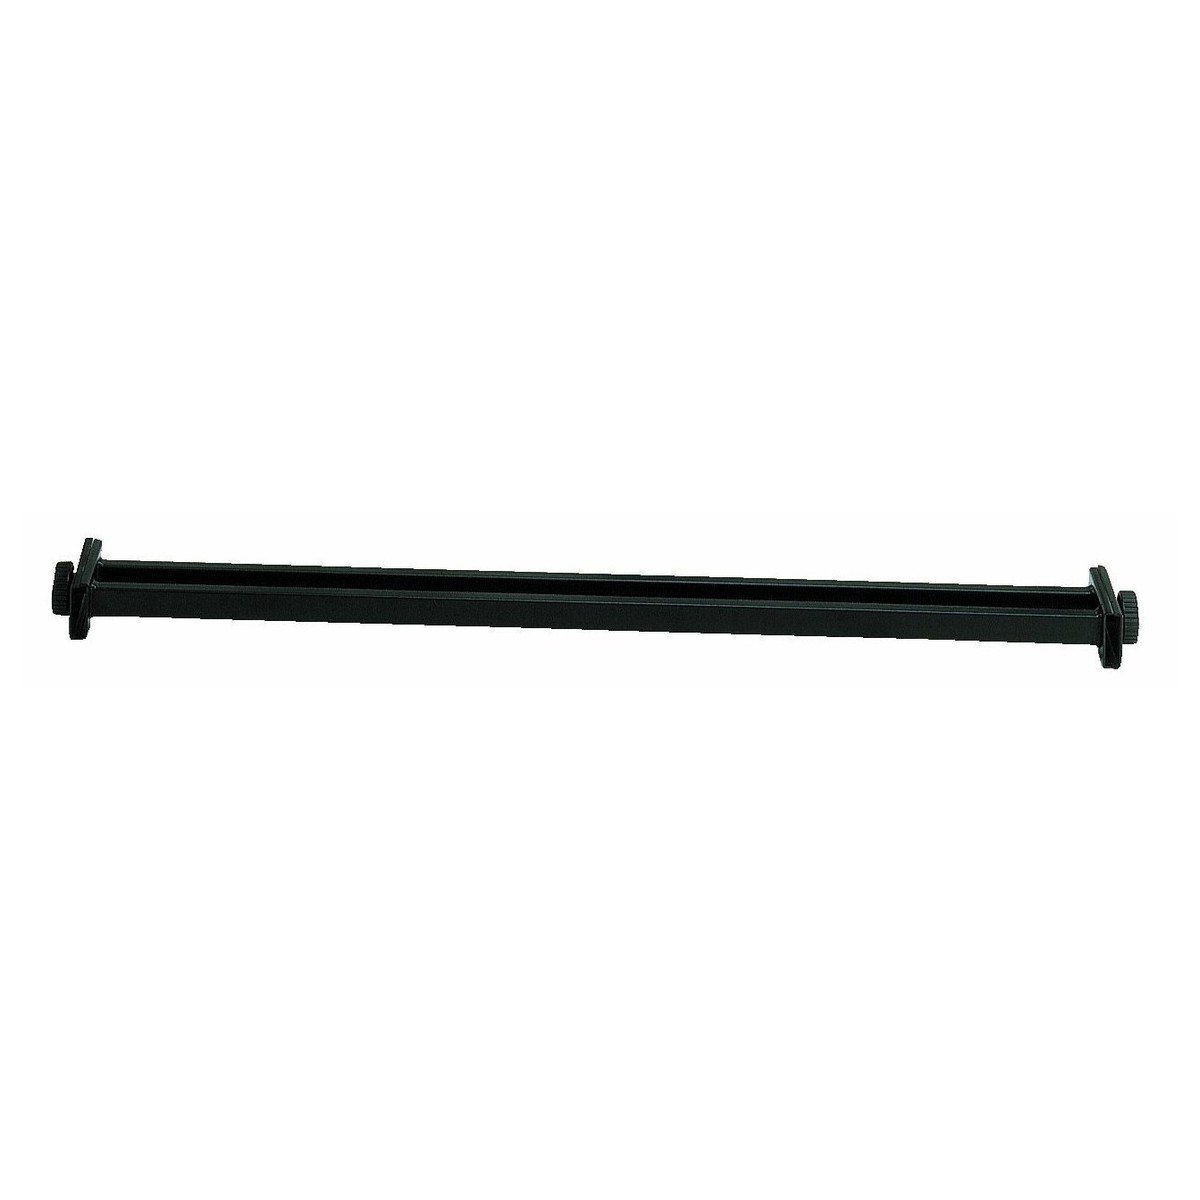 Quiklok Z 720l Wide Accessory Bar